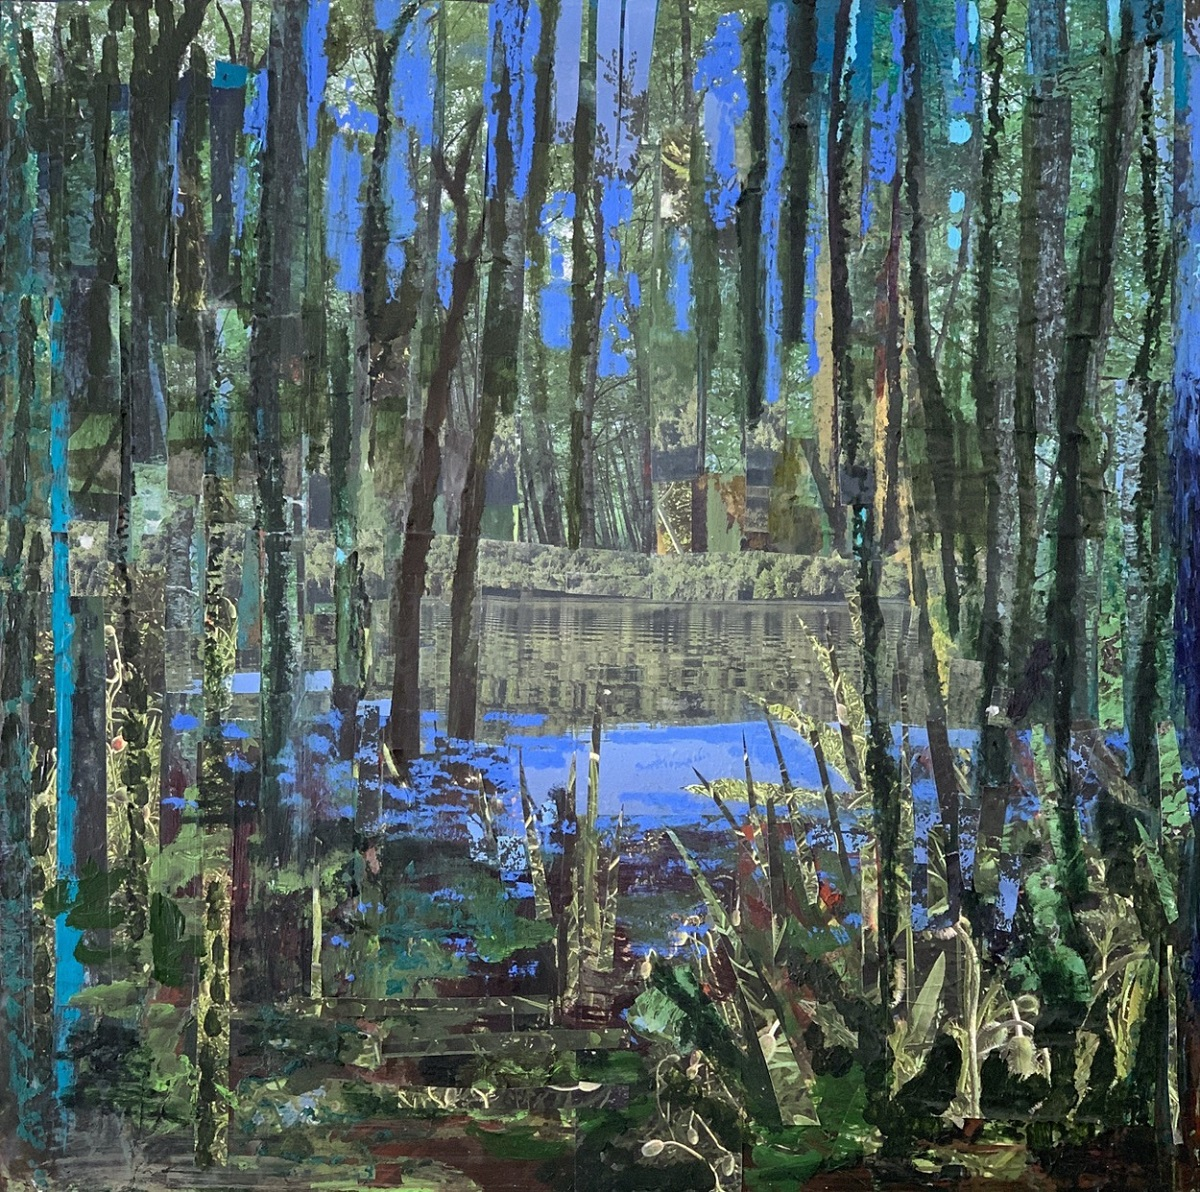 Williams_Vernal Pool 24 inches x 24 inches Encaustic with Oil (2)